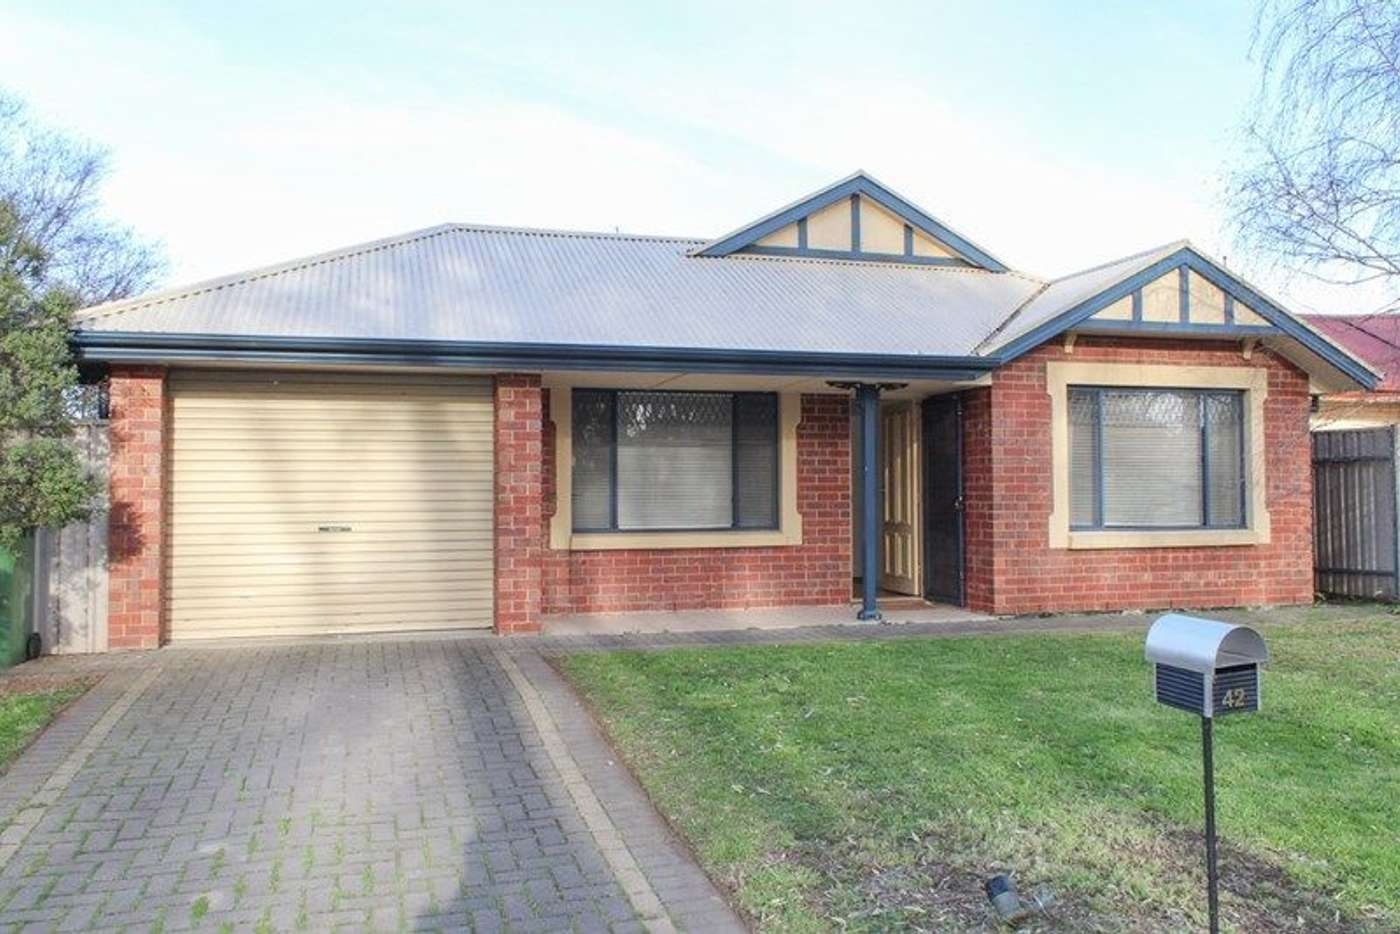 Main view of Homely house listing, 42 Parkview Drive, Mount Barker SA 5251